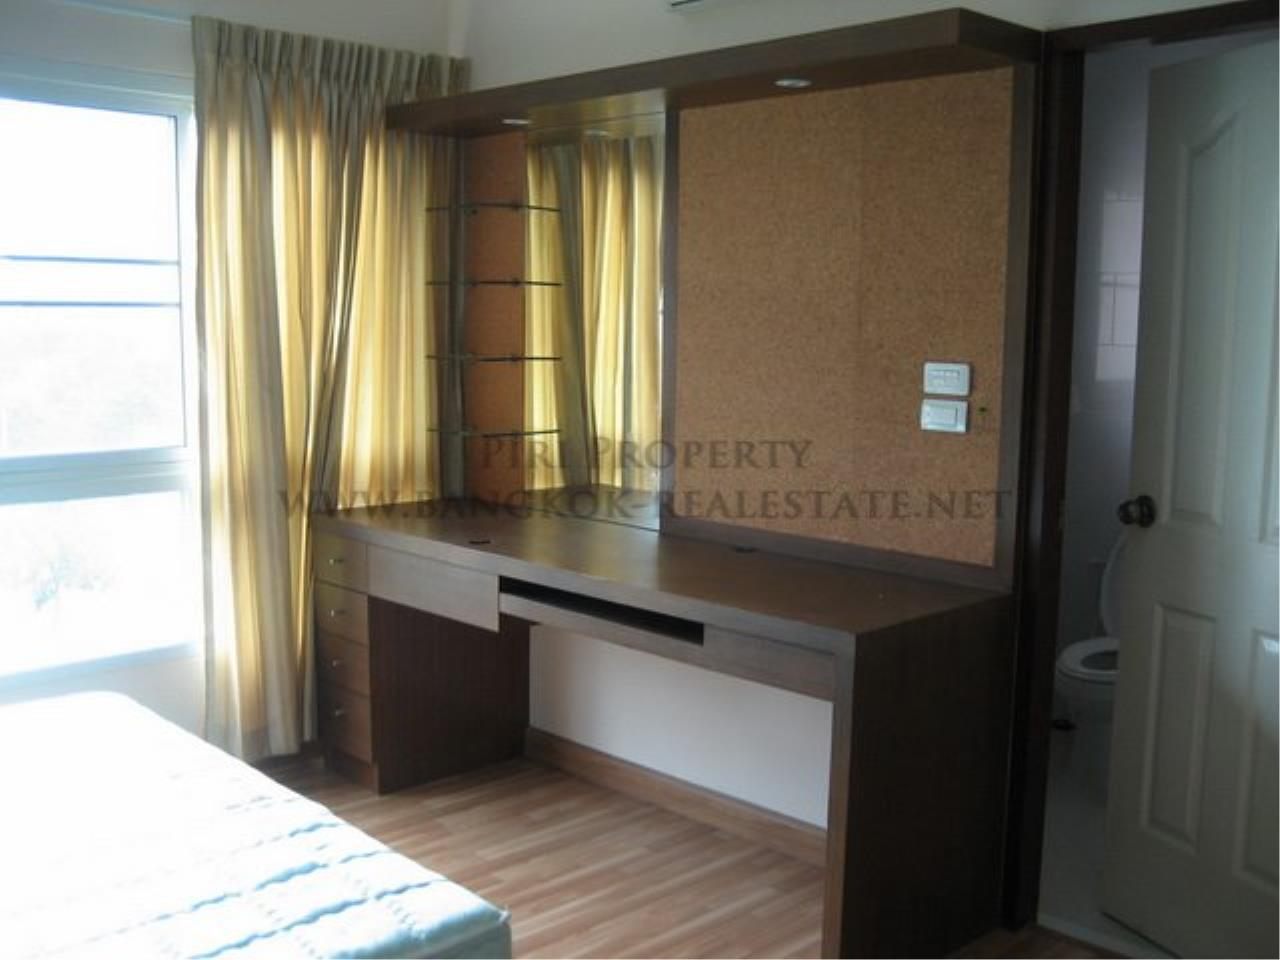 Piri Property Agency's PG Rama 9 - One Bedroom Unit for Rent - Next to Central Rama 9 5